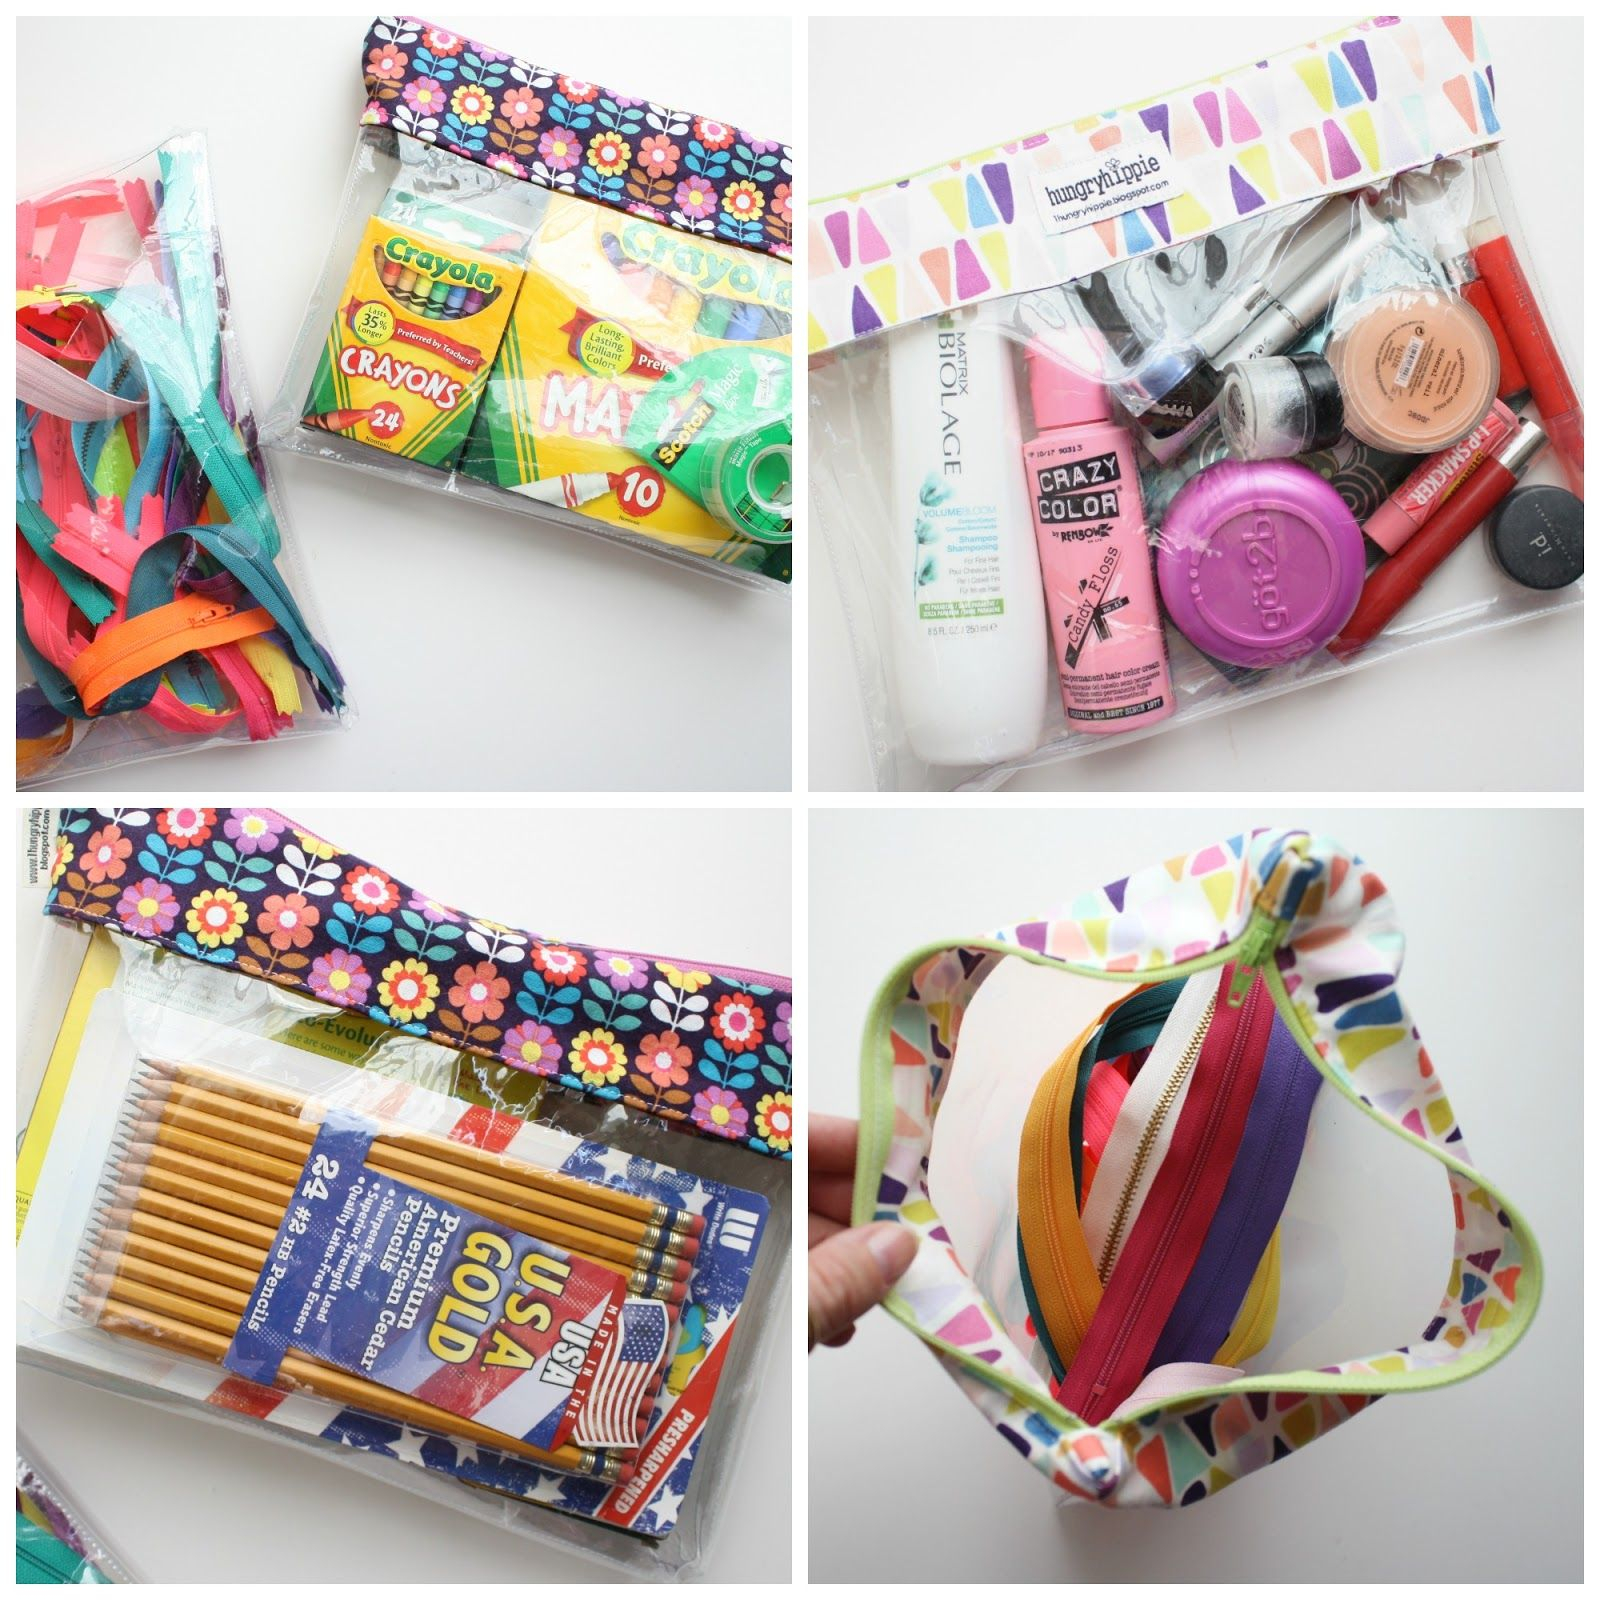 Sewing Vinyl Bags Zipper Pouch How To Sew A Clear Vinyl Bag Sew Fun Zipper Bags Pouches